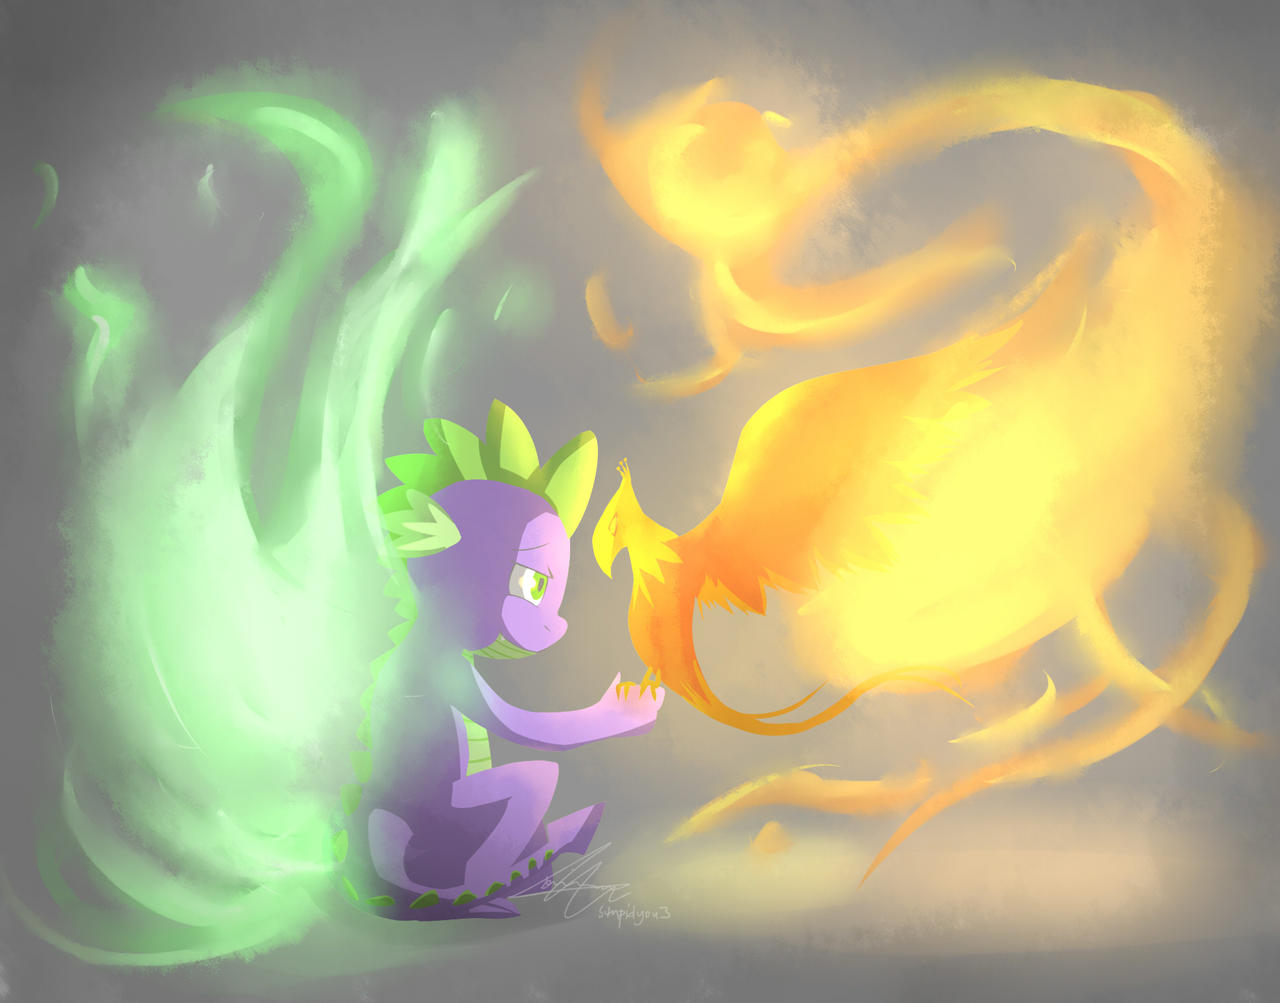 Born from fire. by stupidyou3